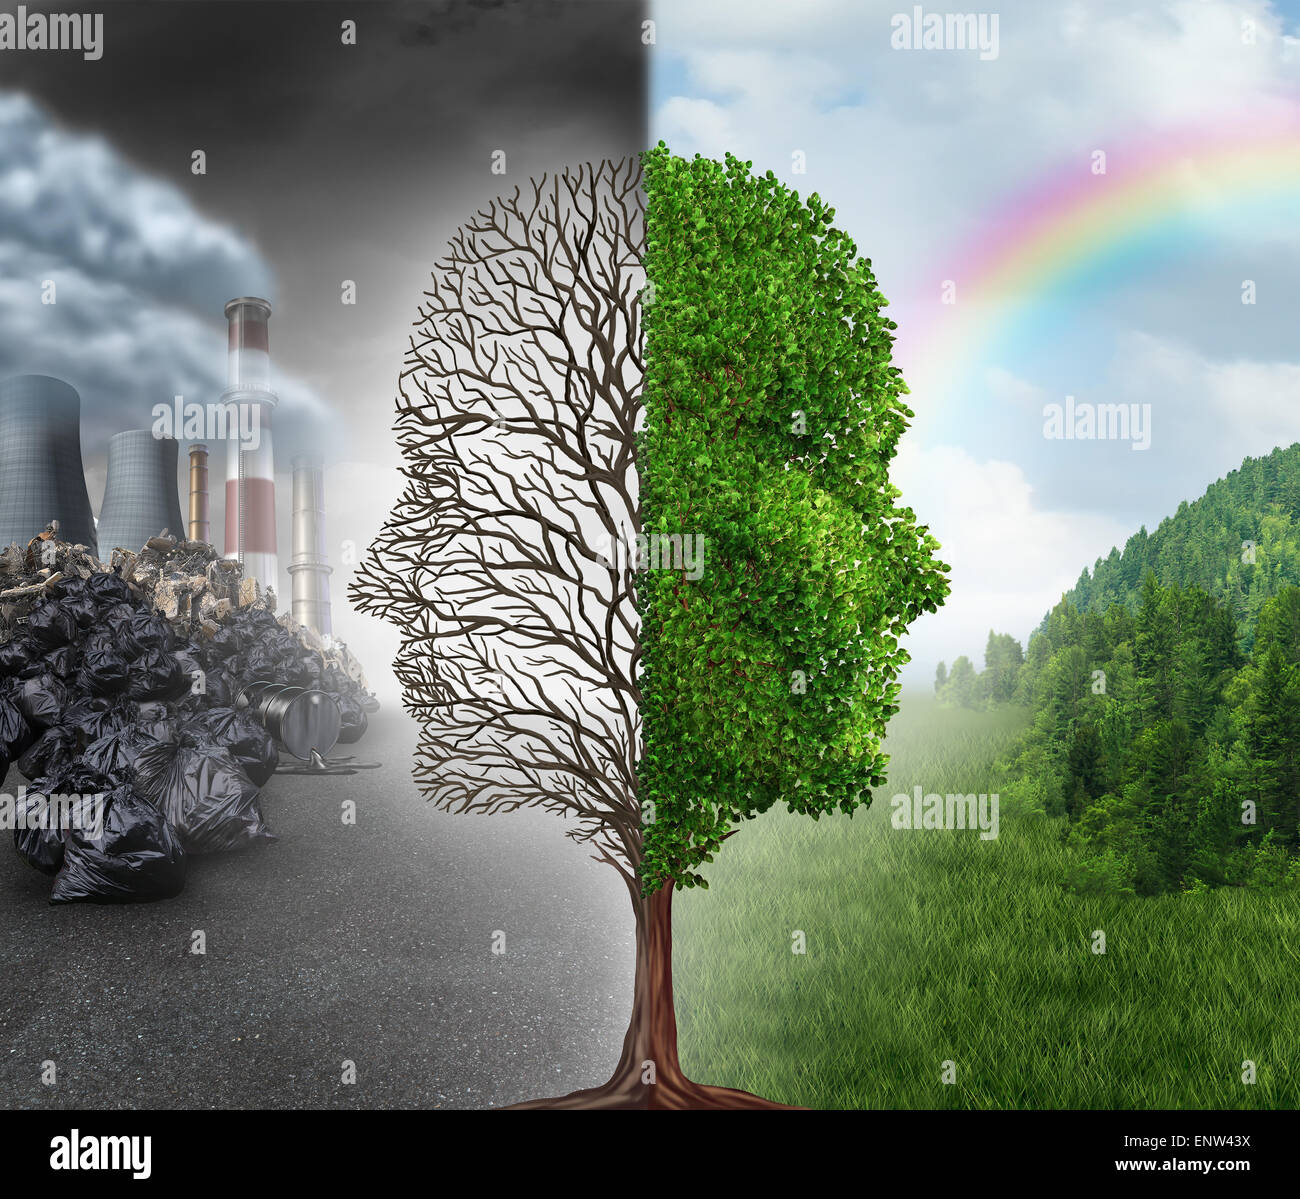 Environment change and global warming environmental concept as a scene cut in two with one half showing a dead tree - Stock Image